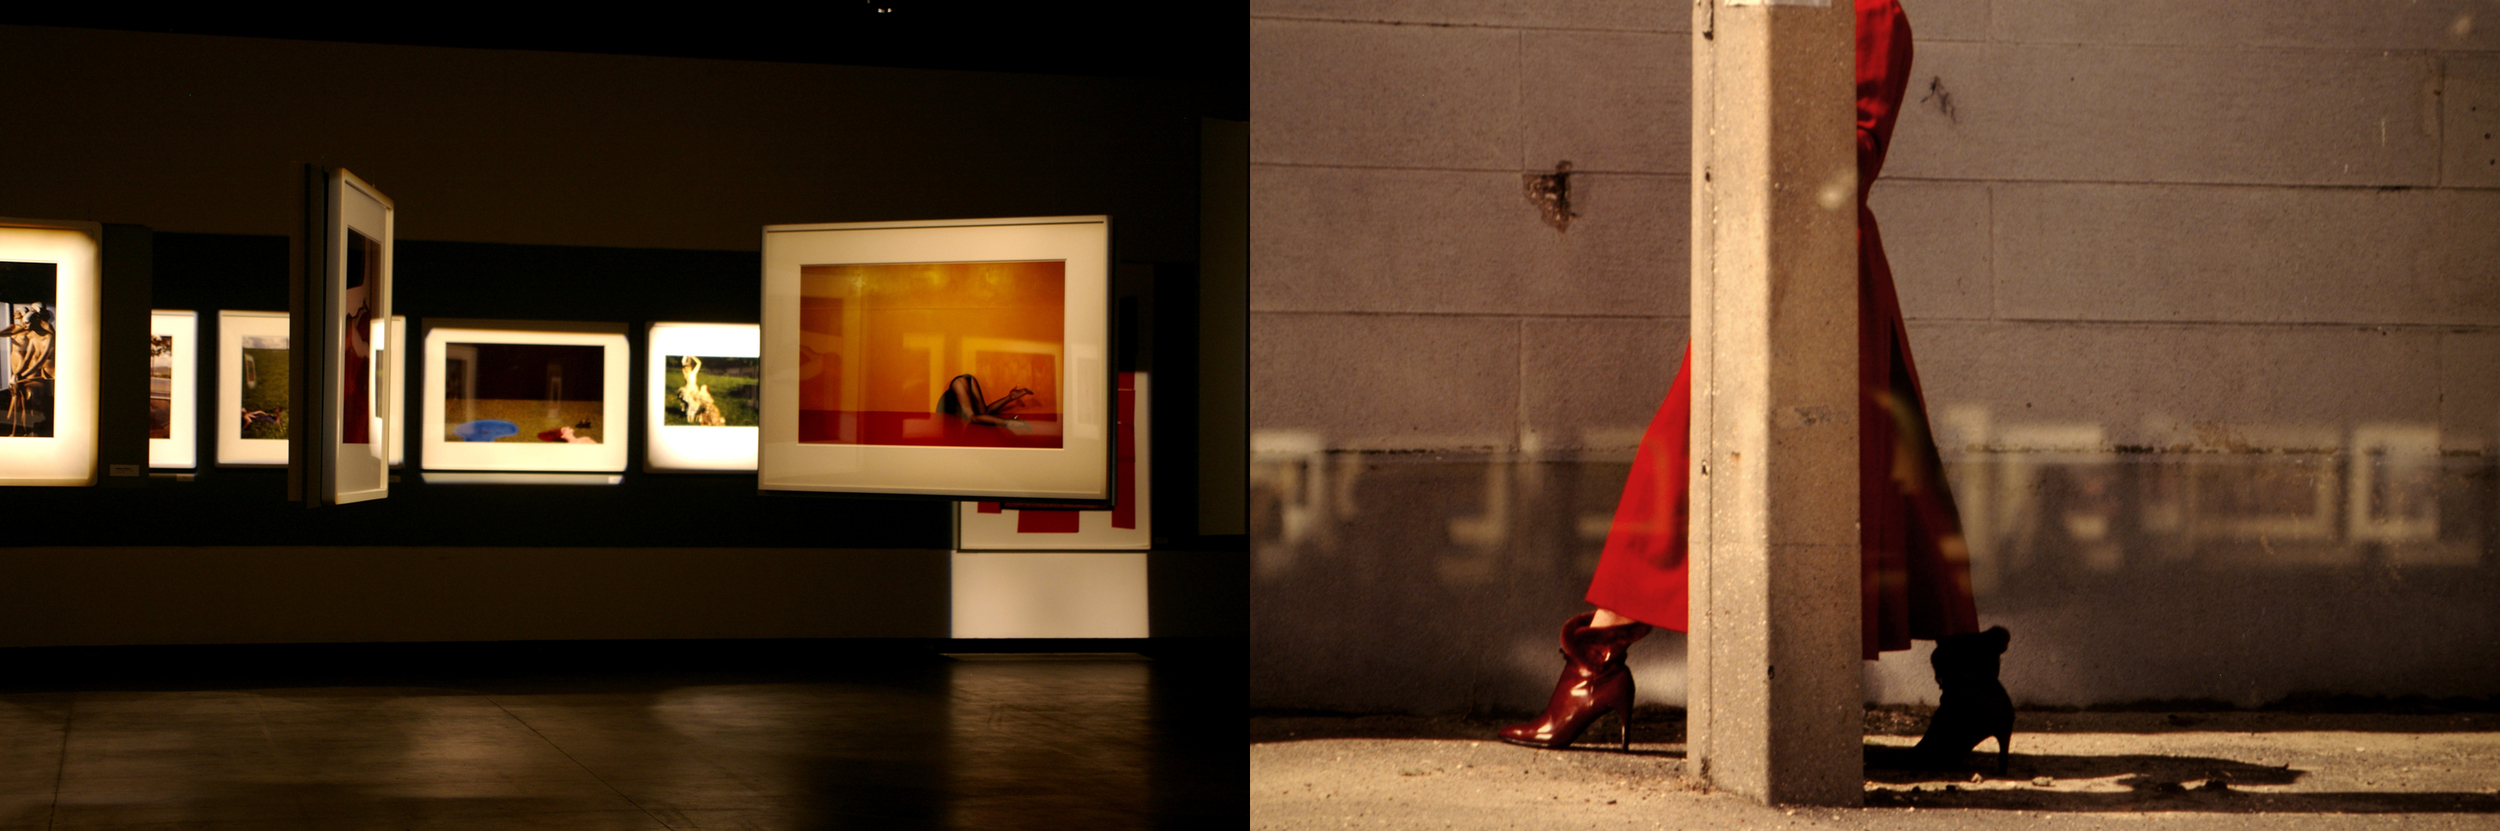 Gallery Pictures of Guy Bourdin's work.Picture by  Mariana Leme